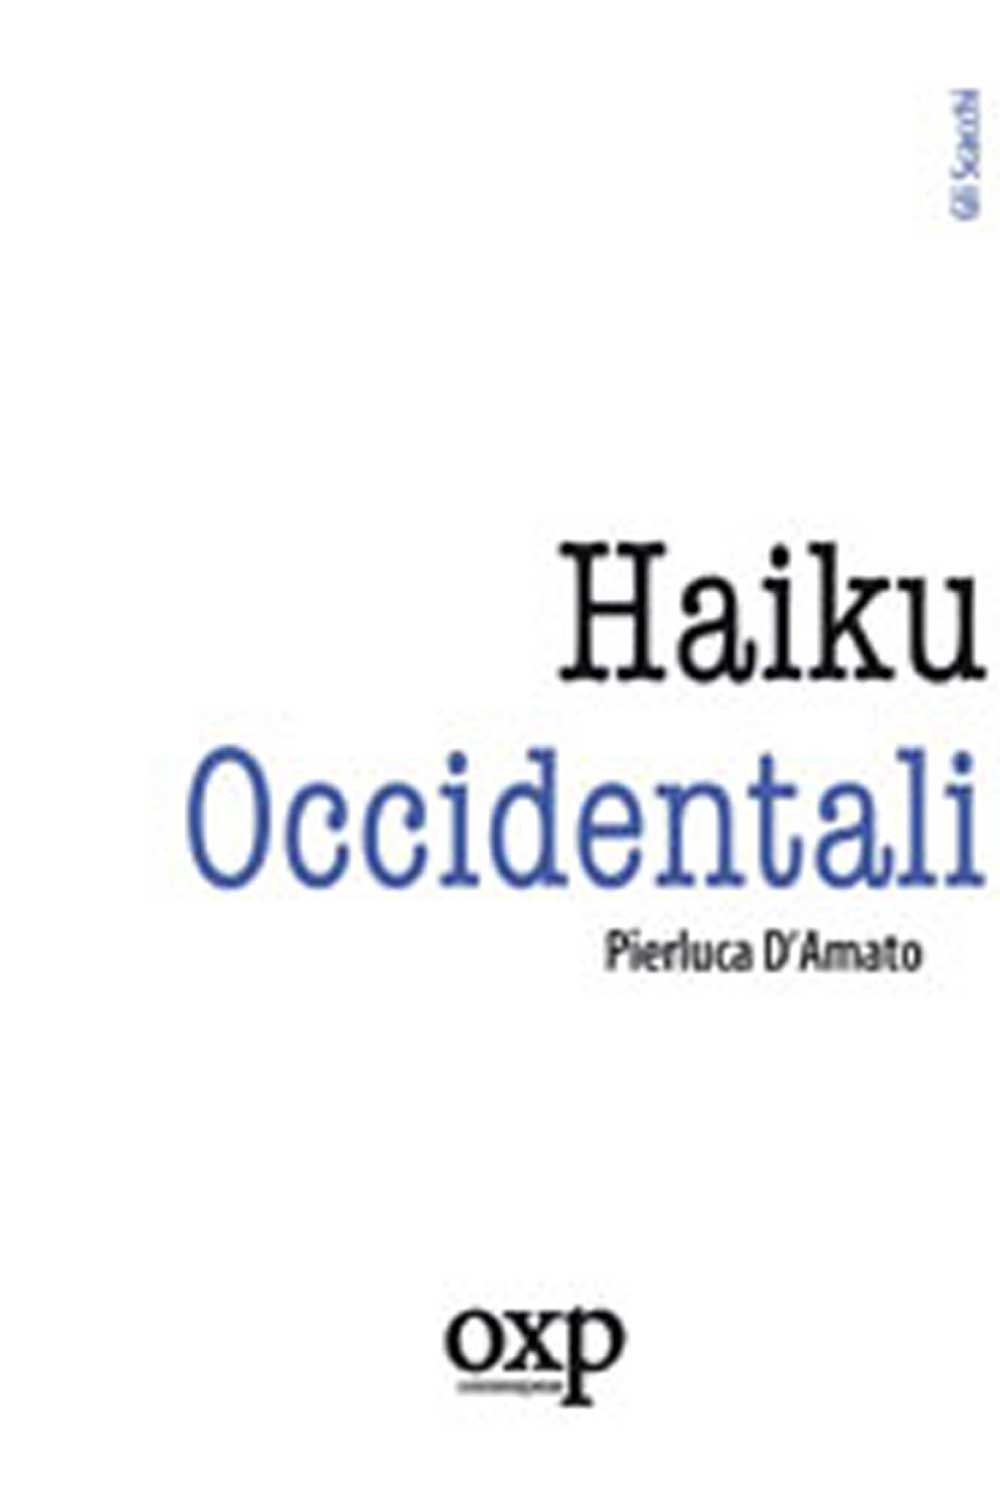 Haiku occidentali